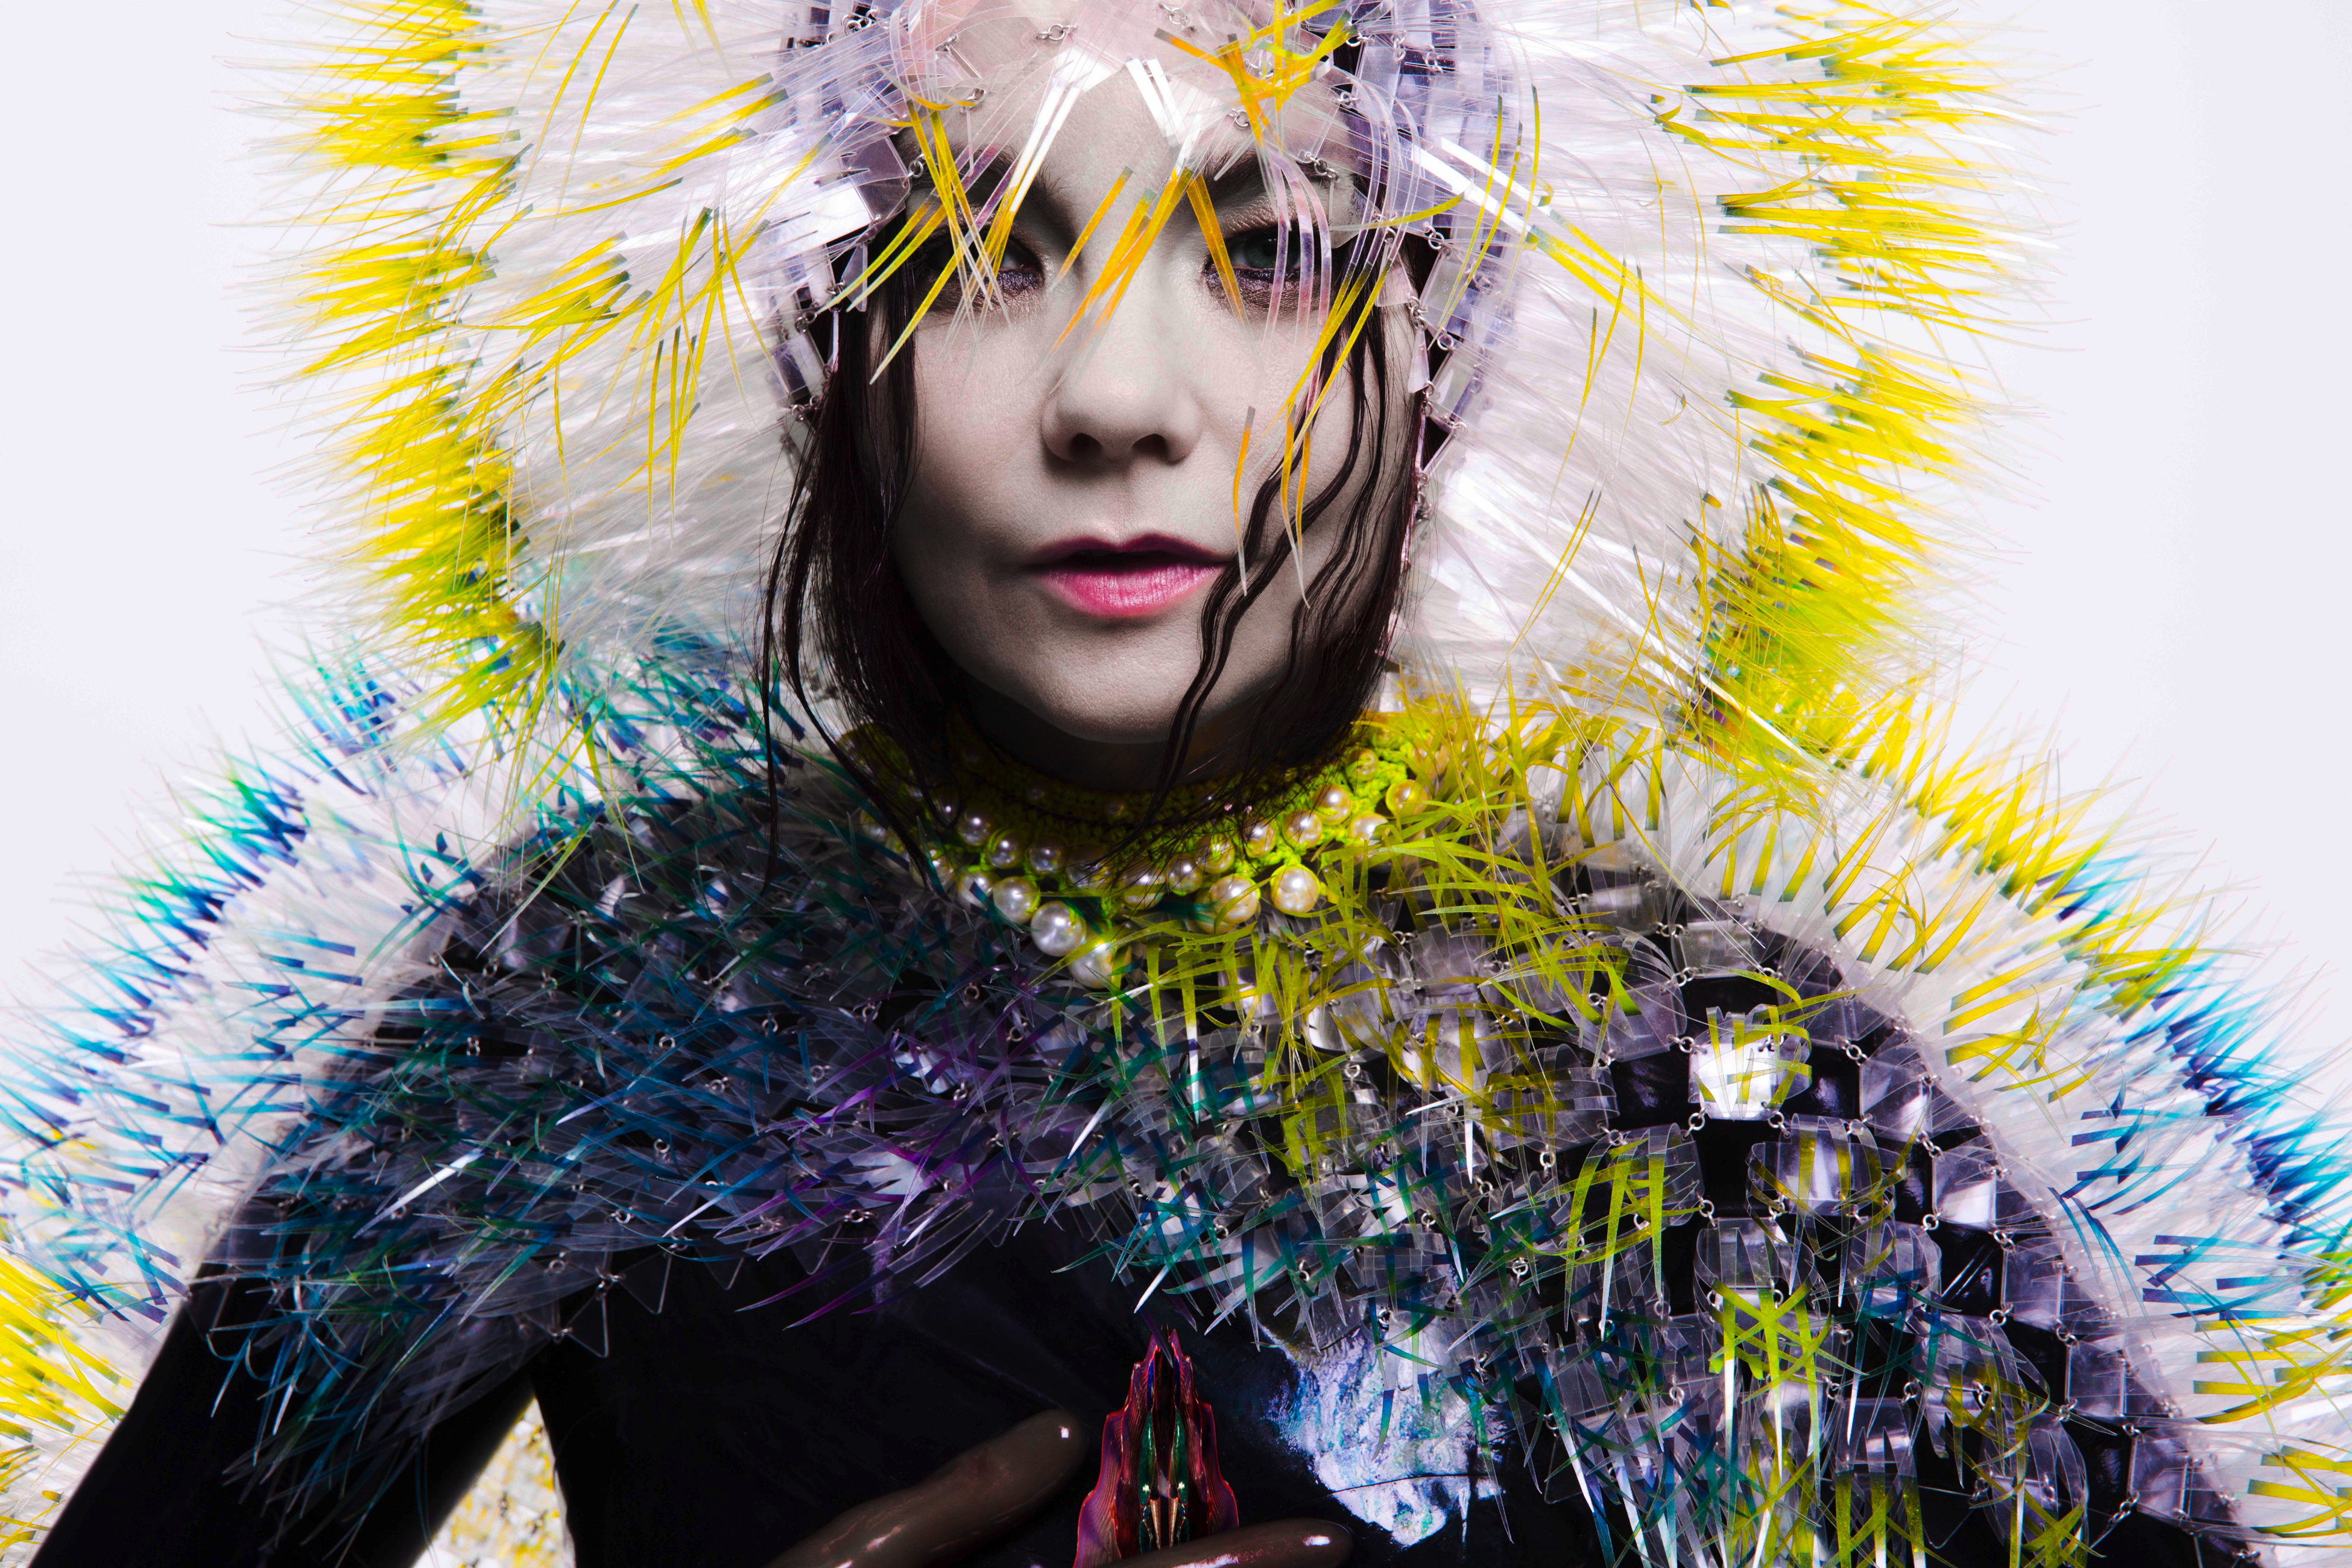 Bjork wears Syren Catsuit on her Latest Album Cover